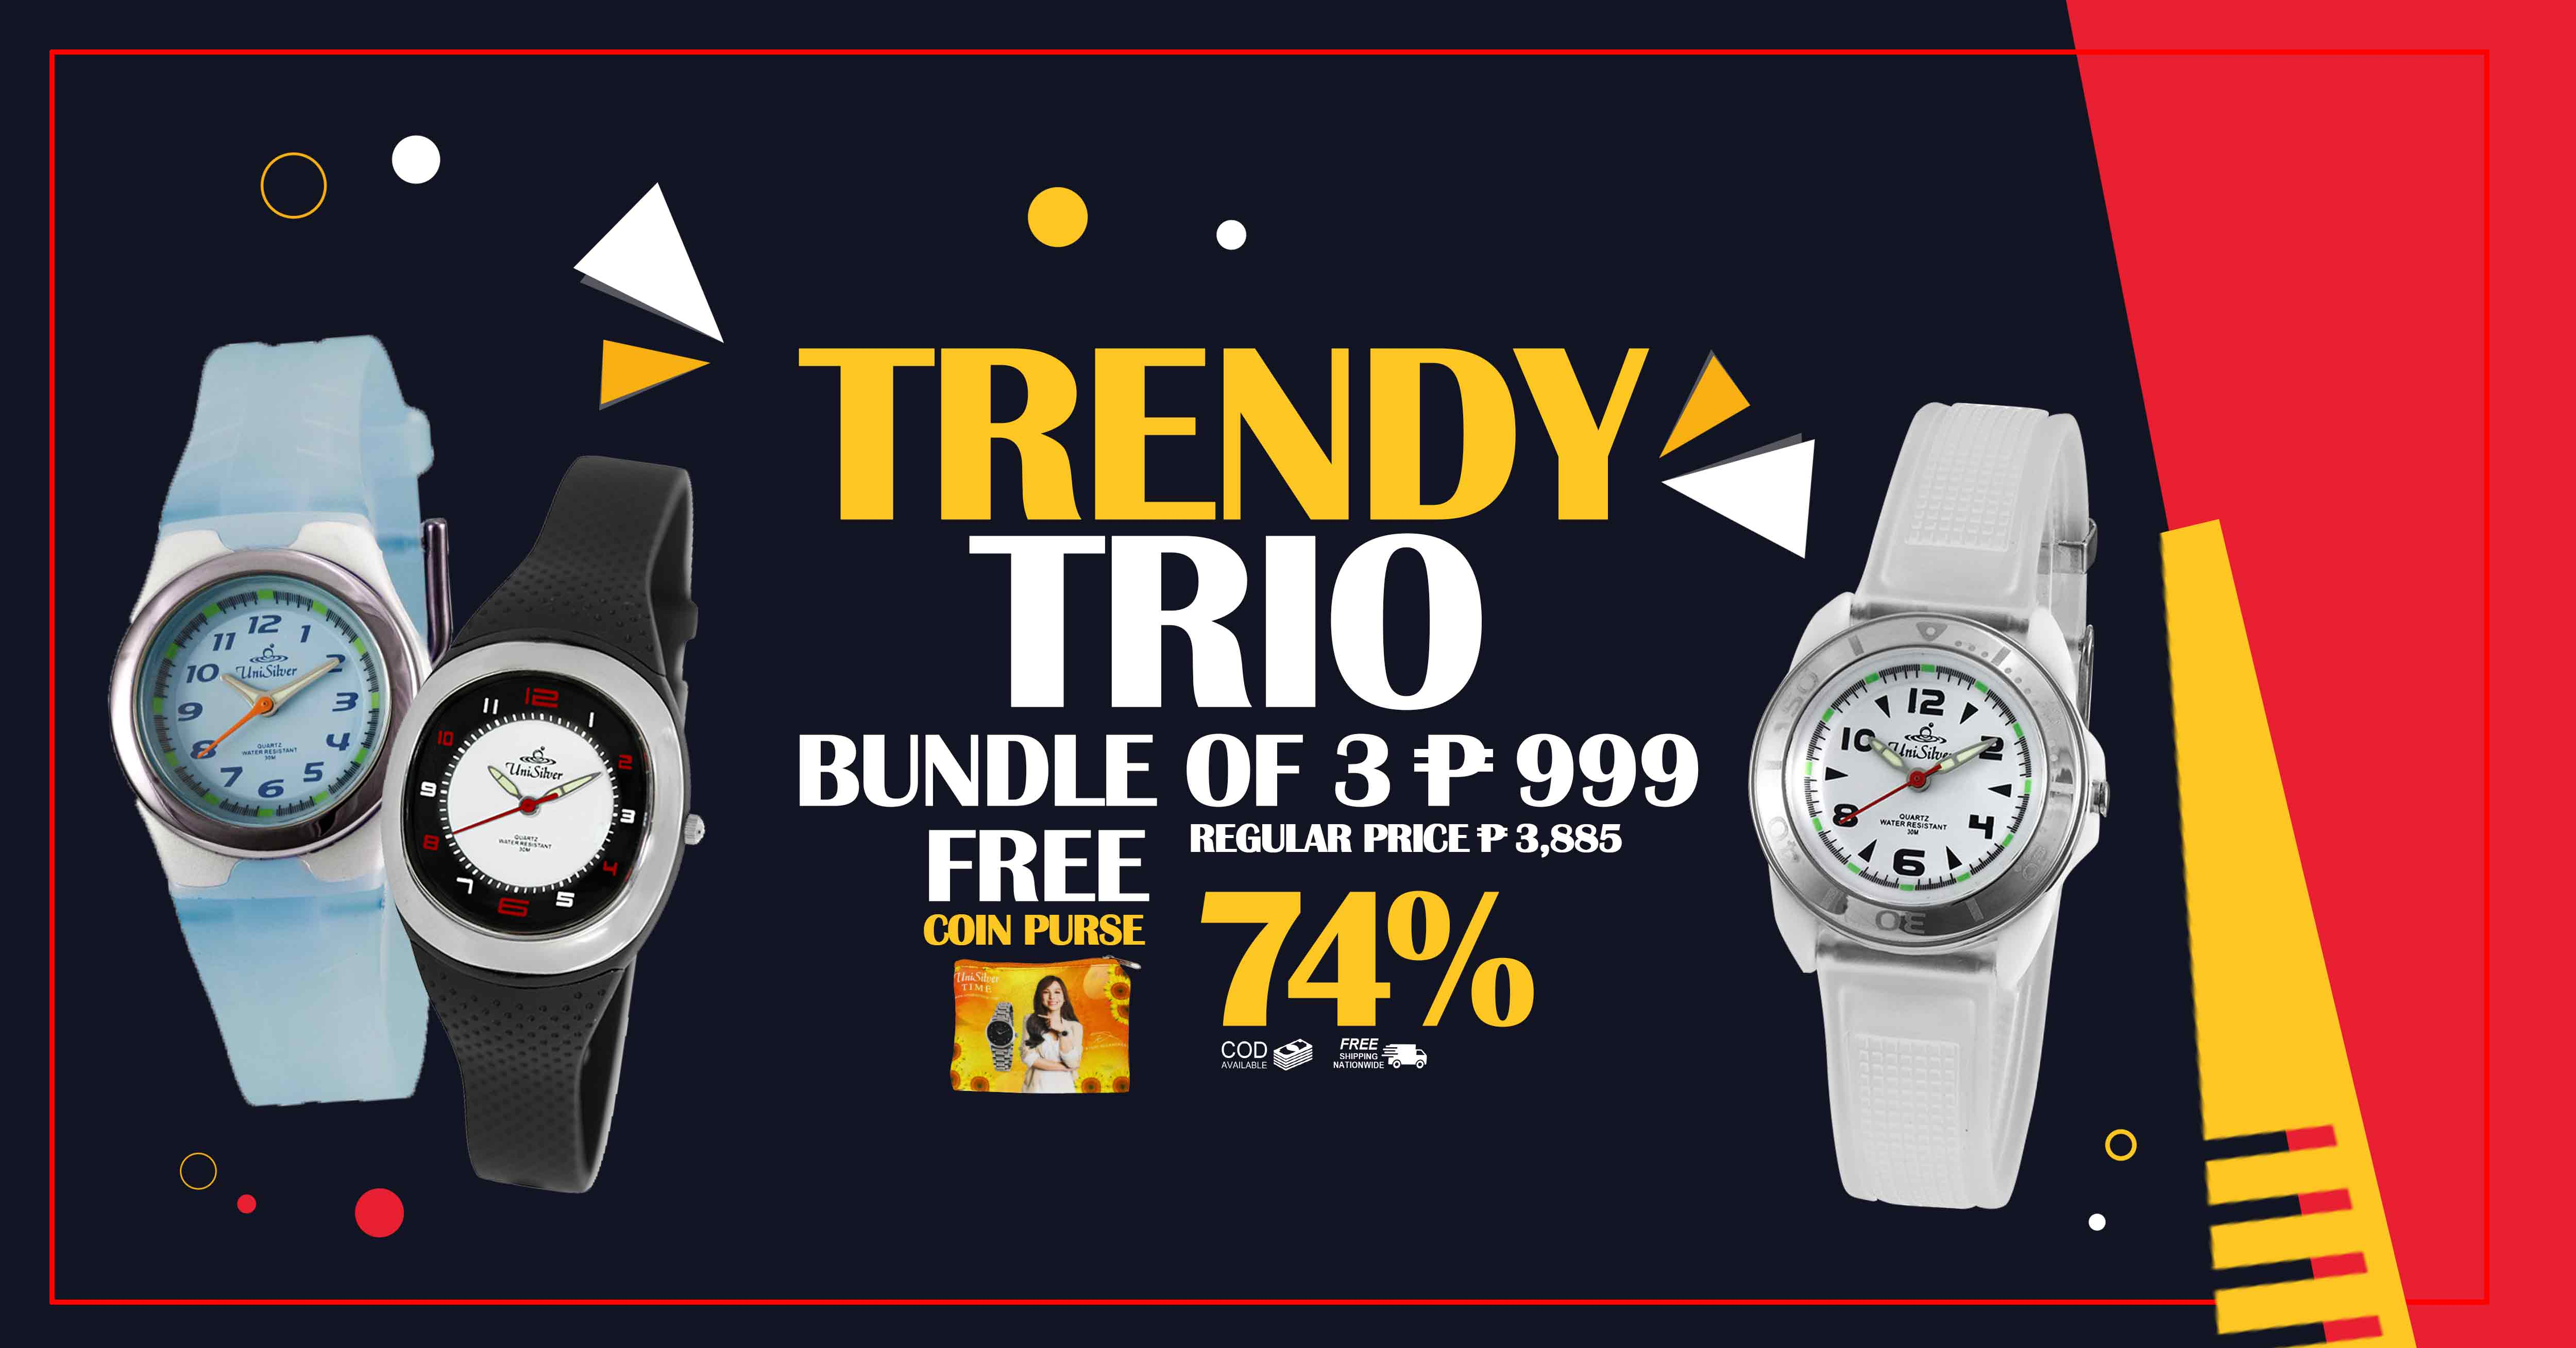 CUTIE TRENDY TRIO Watches from UniSilver TIME!  Bundle of 3 Rubber Watches for only P999 plus free coin purse. Enjoy free shipping nationwide. Cash on delivery option is available. This promo is only available online http://www.unisilvertime.com/  Hurry and order now >>> http://bit.ly/2kEeN86